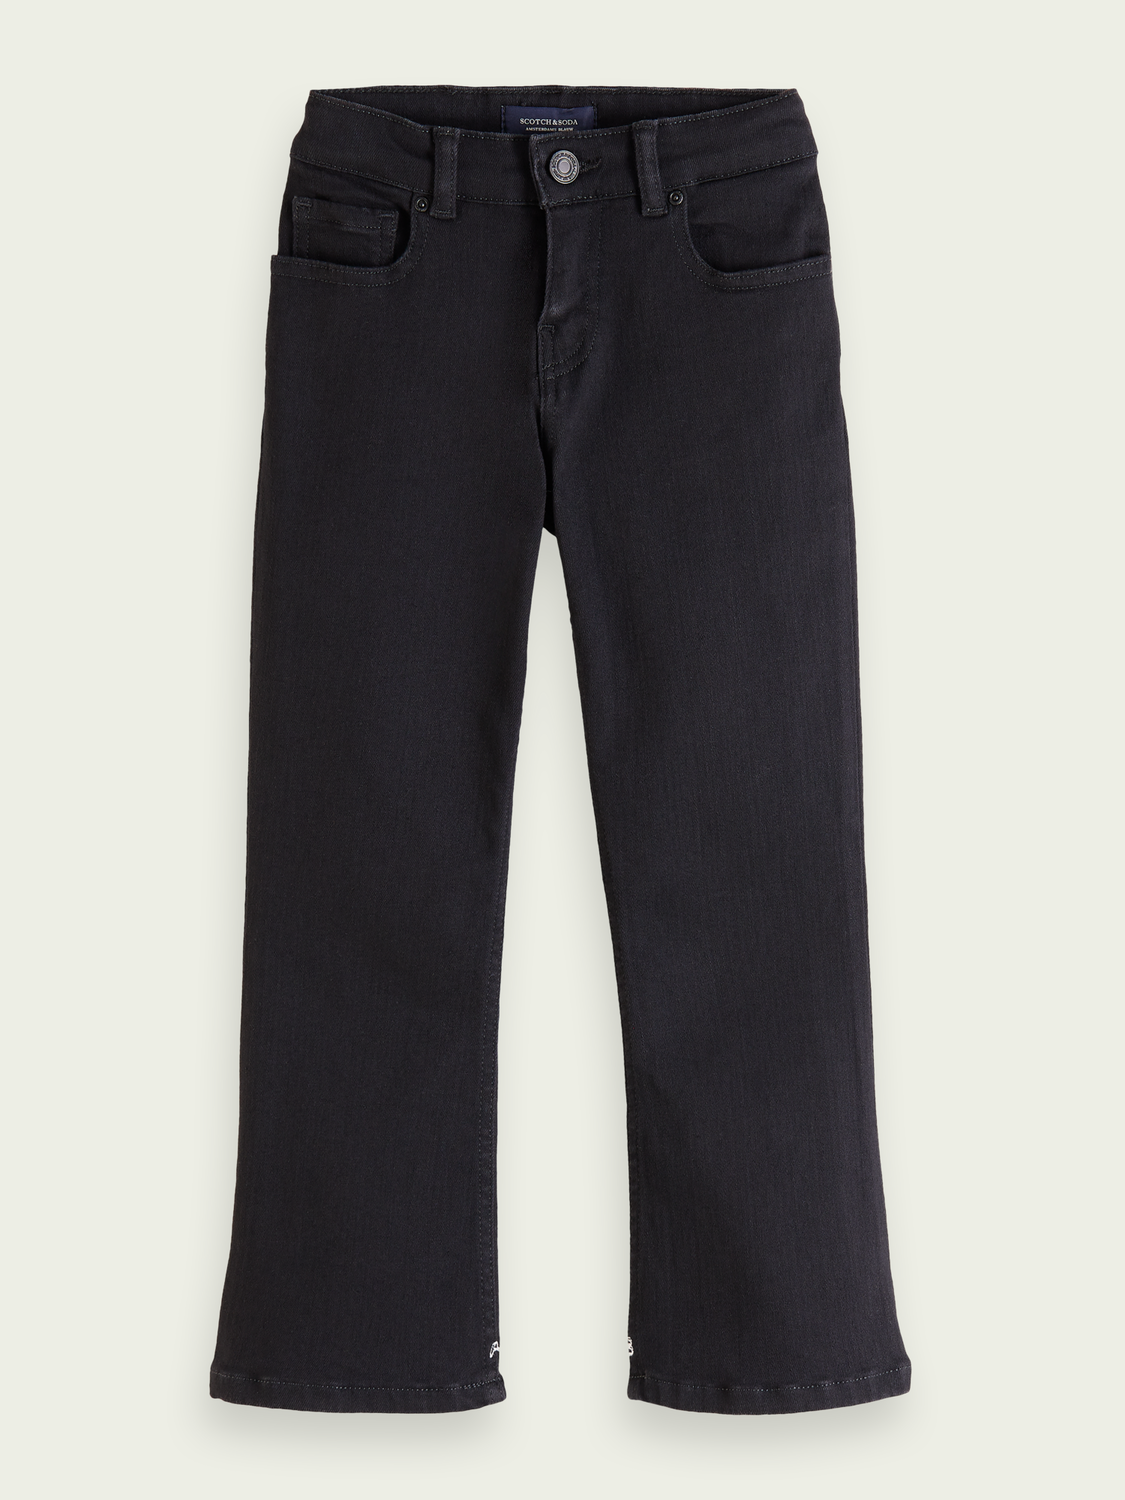 Kids The Kick flare jeans - Black Shadow